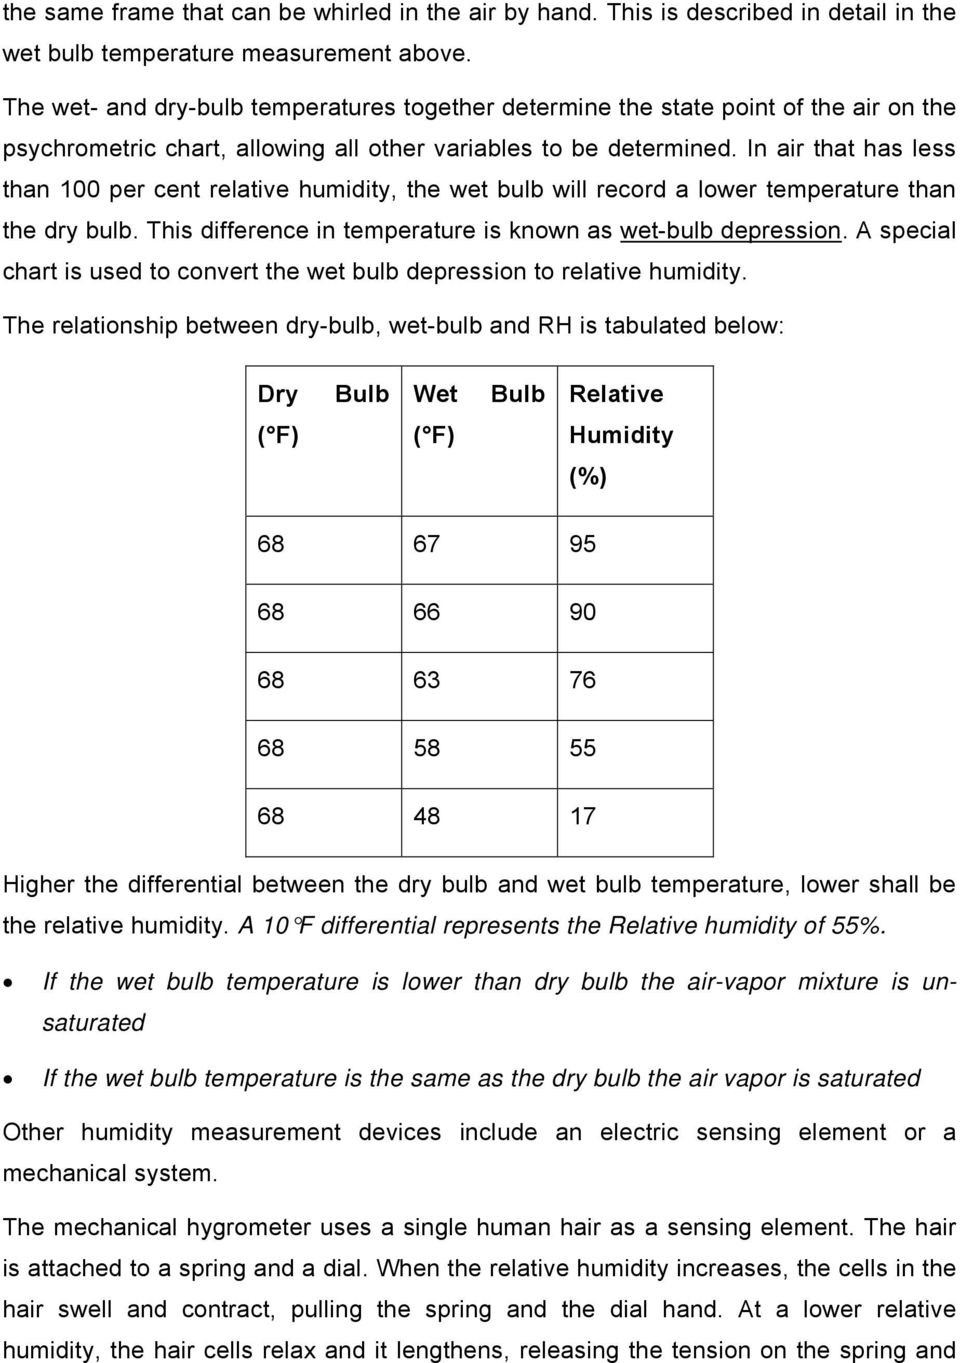 In air that has less than 100 per cent relative humidity, the wet bulb will record a lower temperature than the dry bulb. This difference in temperature is known as wet-bulb depression.